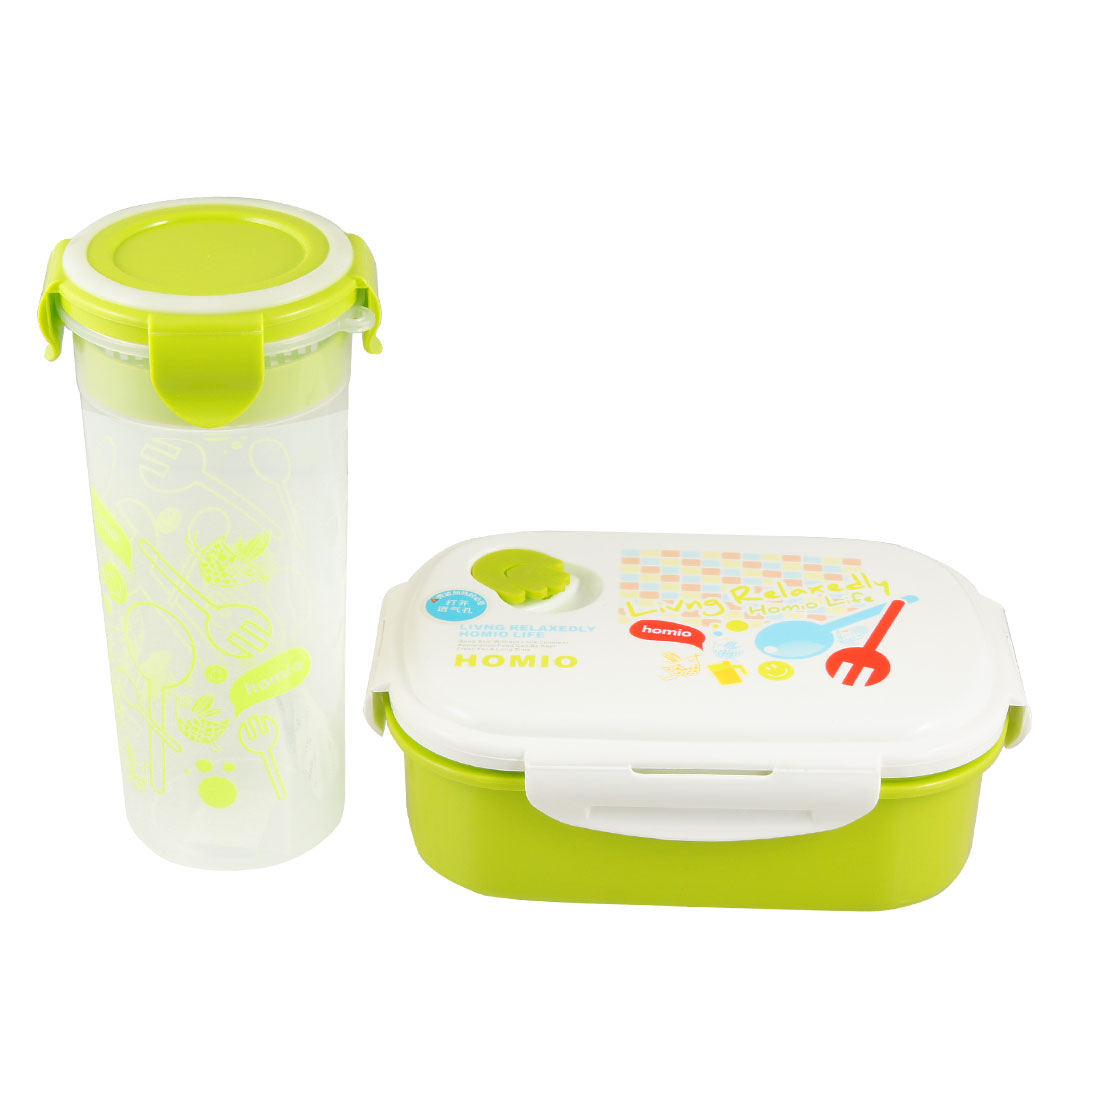 3 in 1 Package Traveling Water Holder Plastic Spoon Green White Lunch Box Set